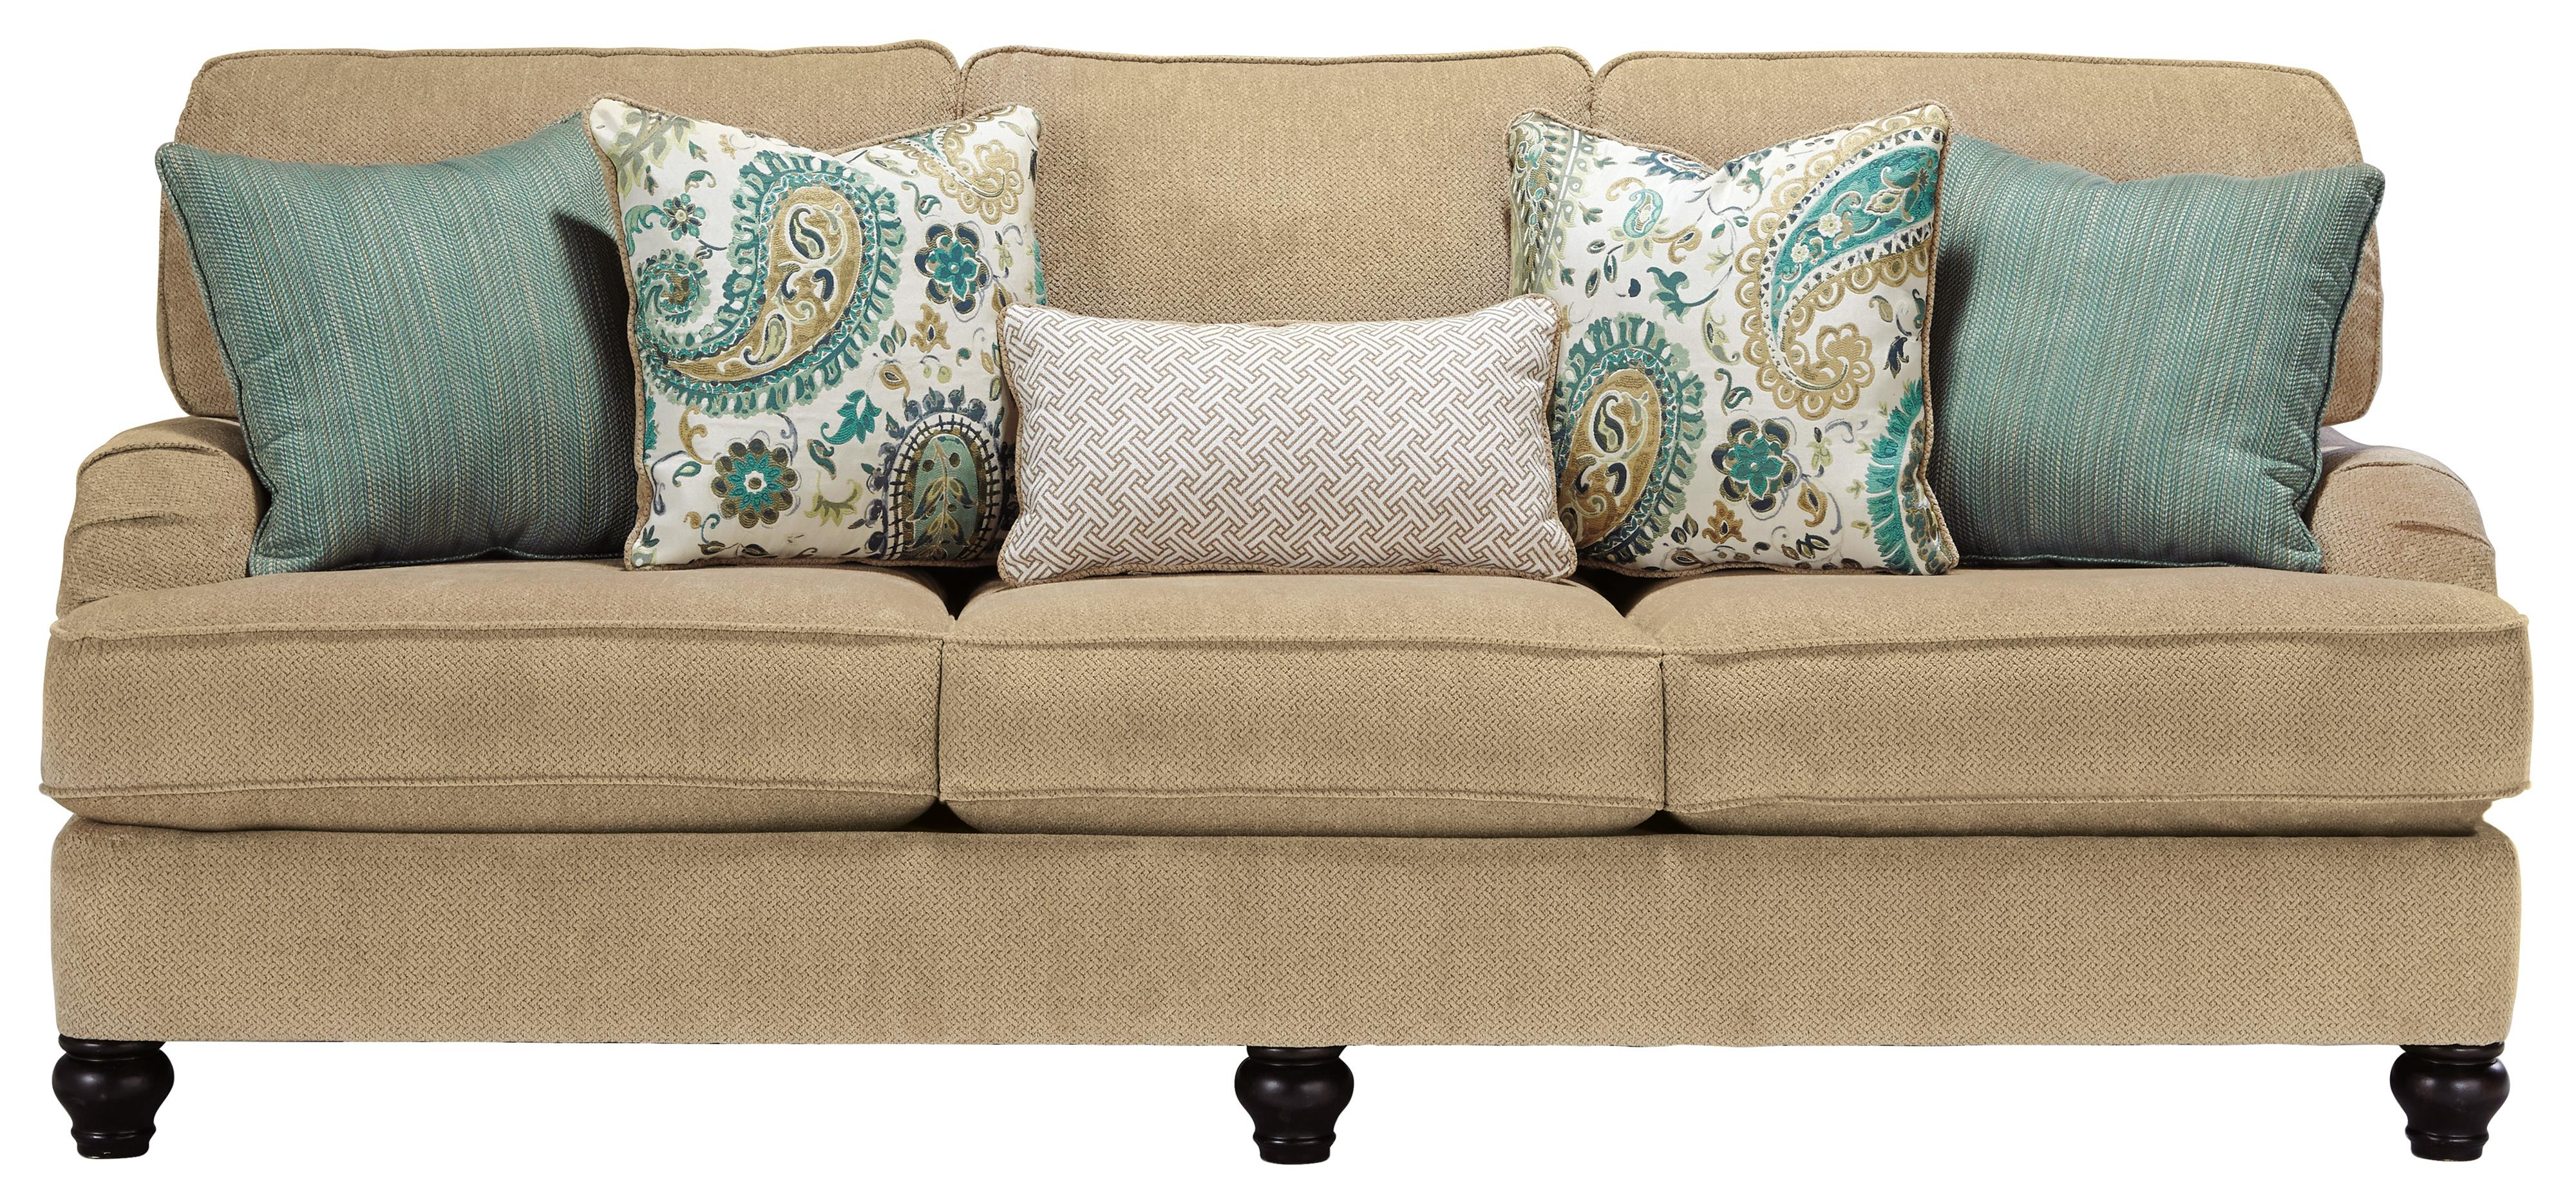 Sofa with Reversible Coil Seat Cushions & English Arms by